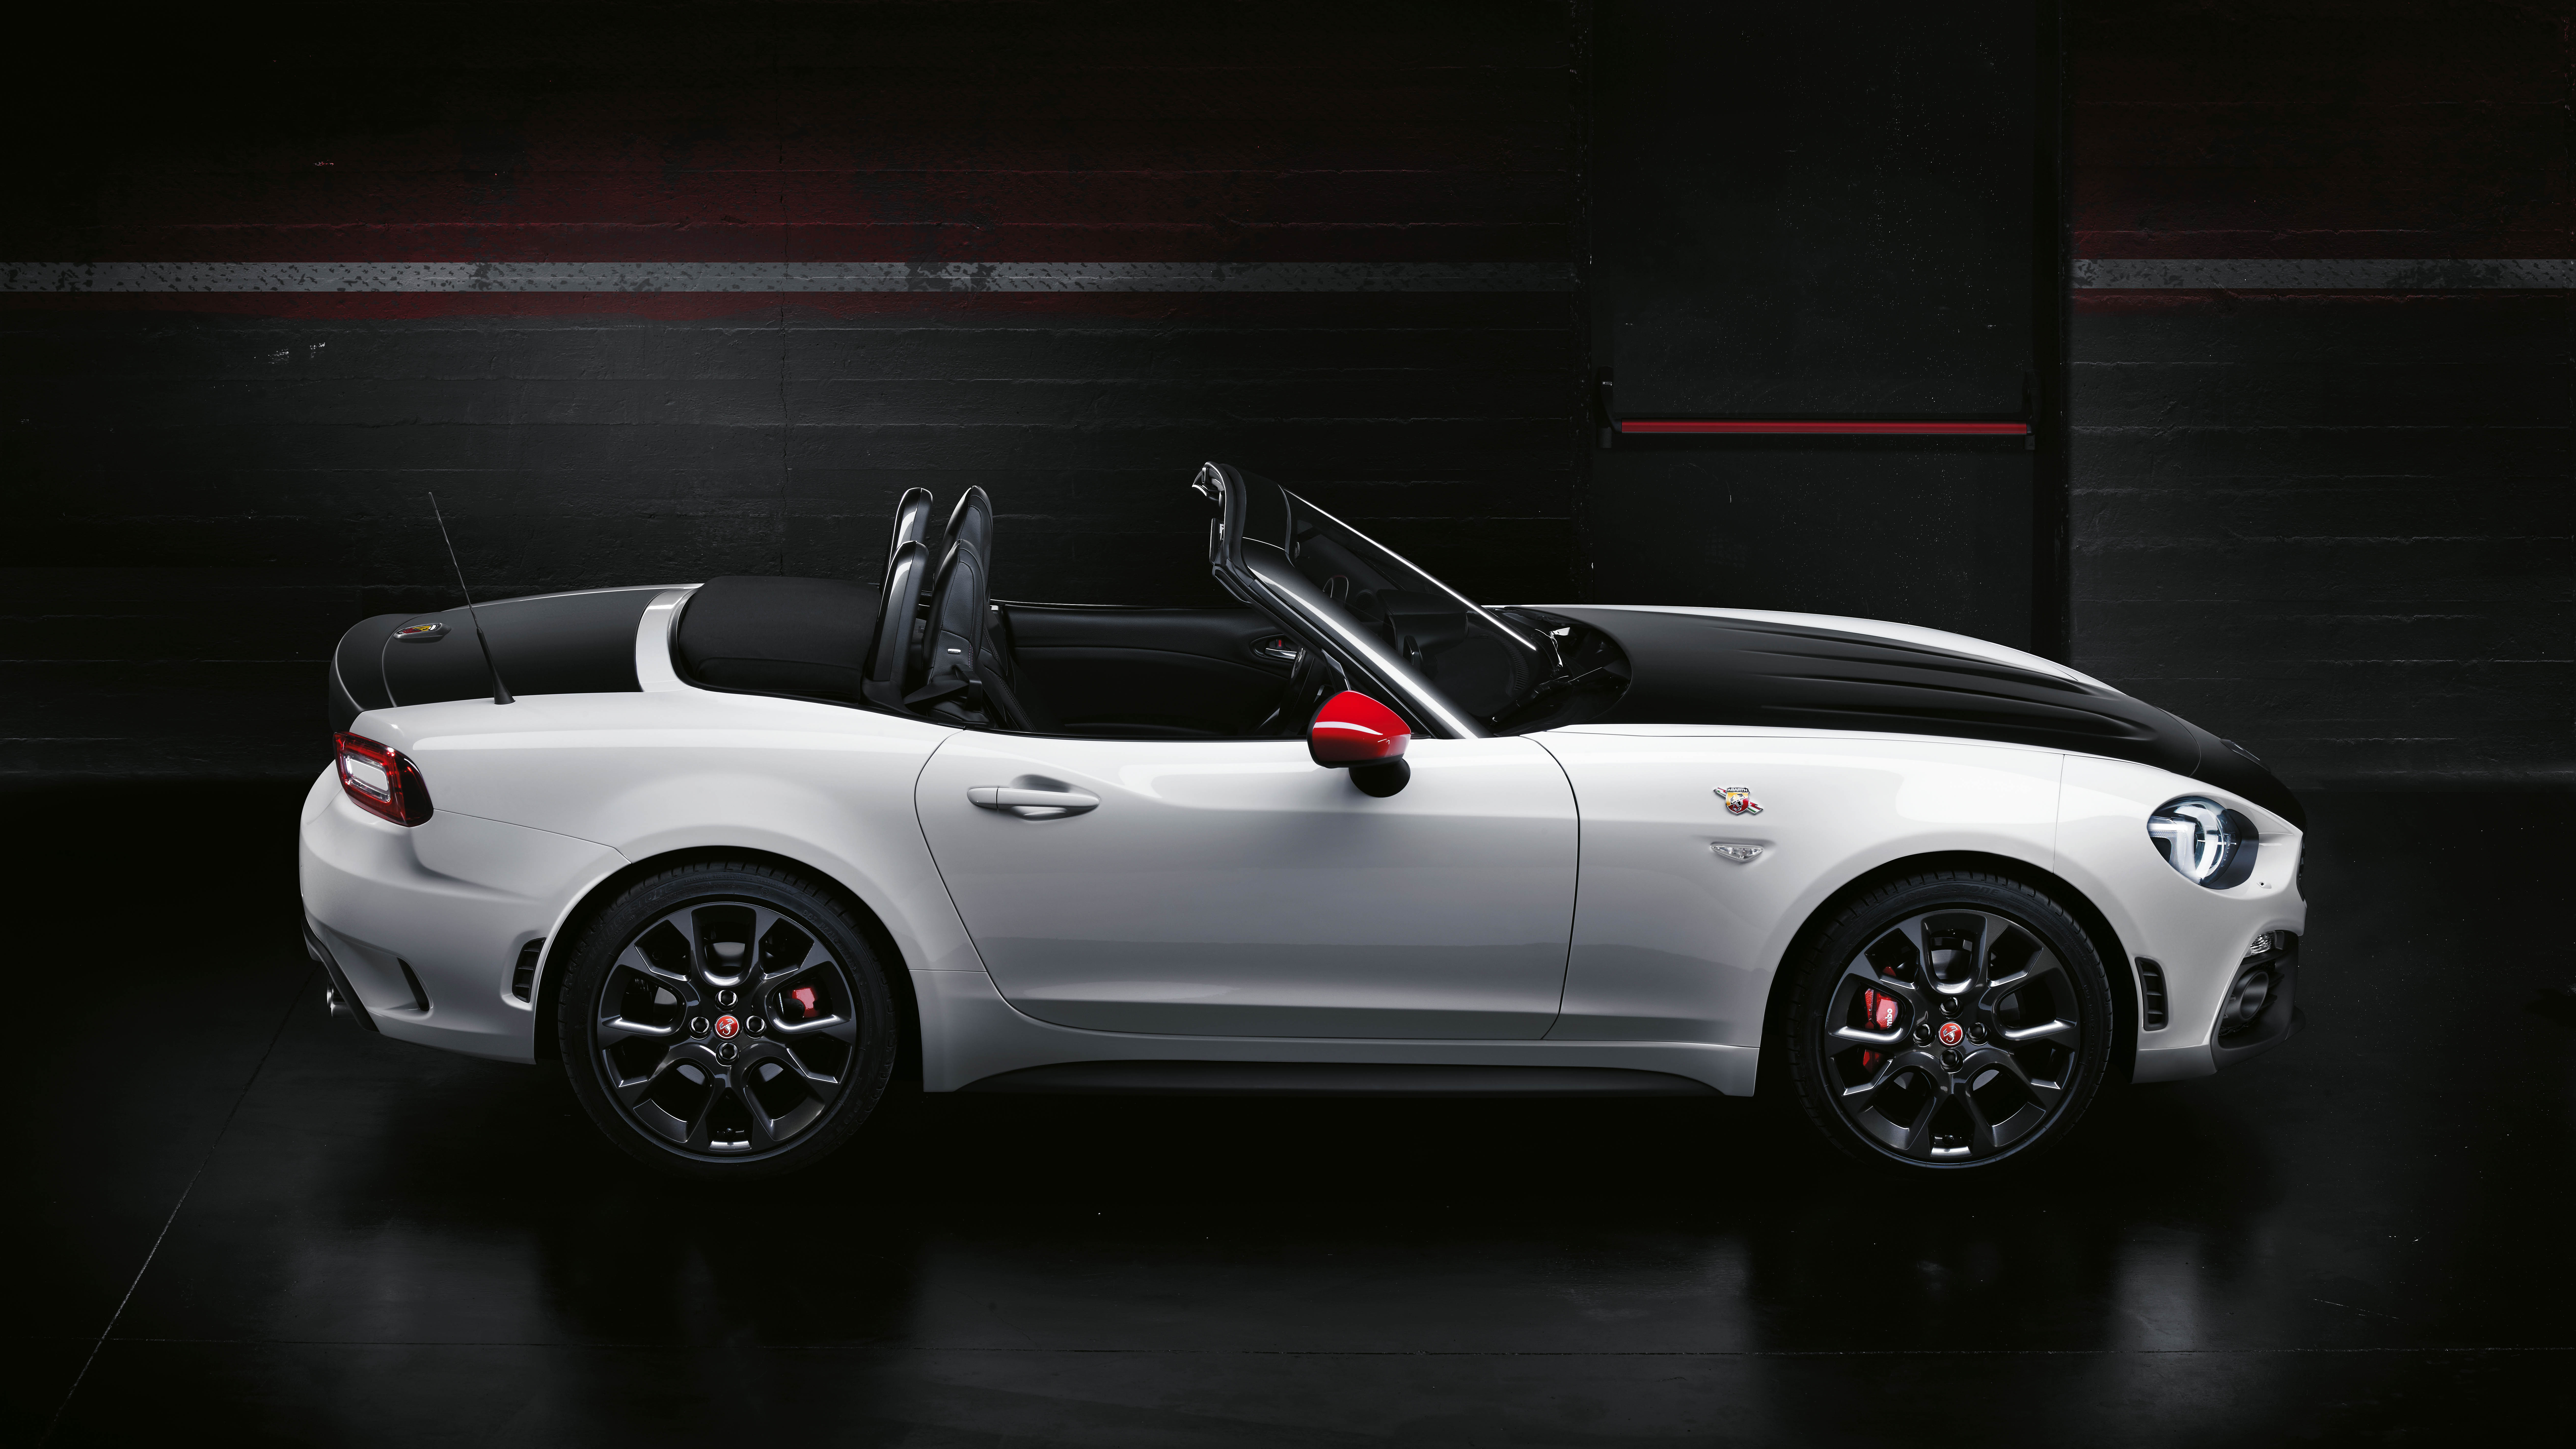 abarth 39 s 124 spider is here and there 39 s a 300bhp rally version top gear. Black Bedroom Furniture Sets. Home Design Ideas